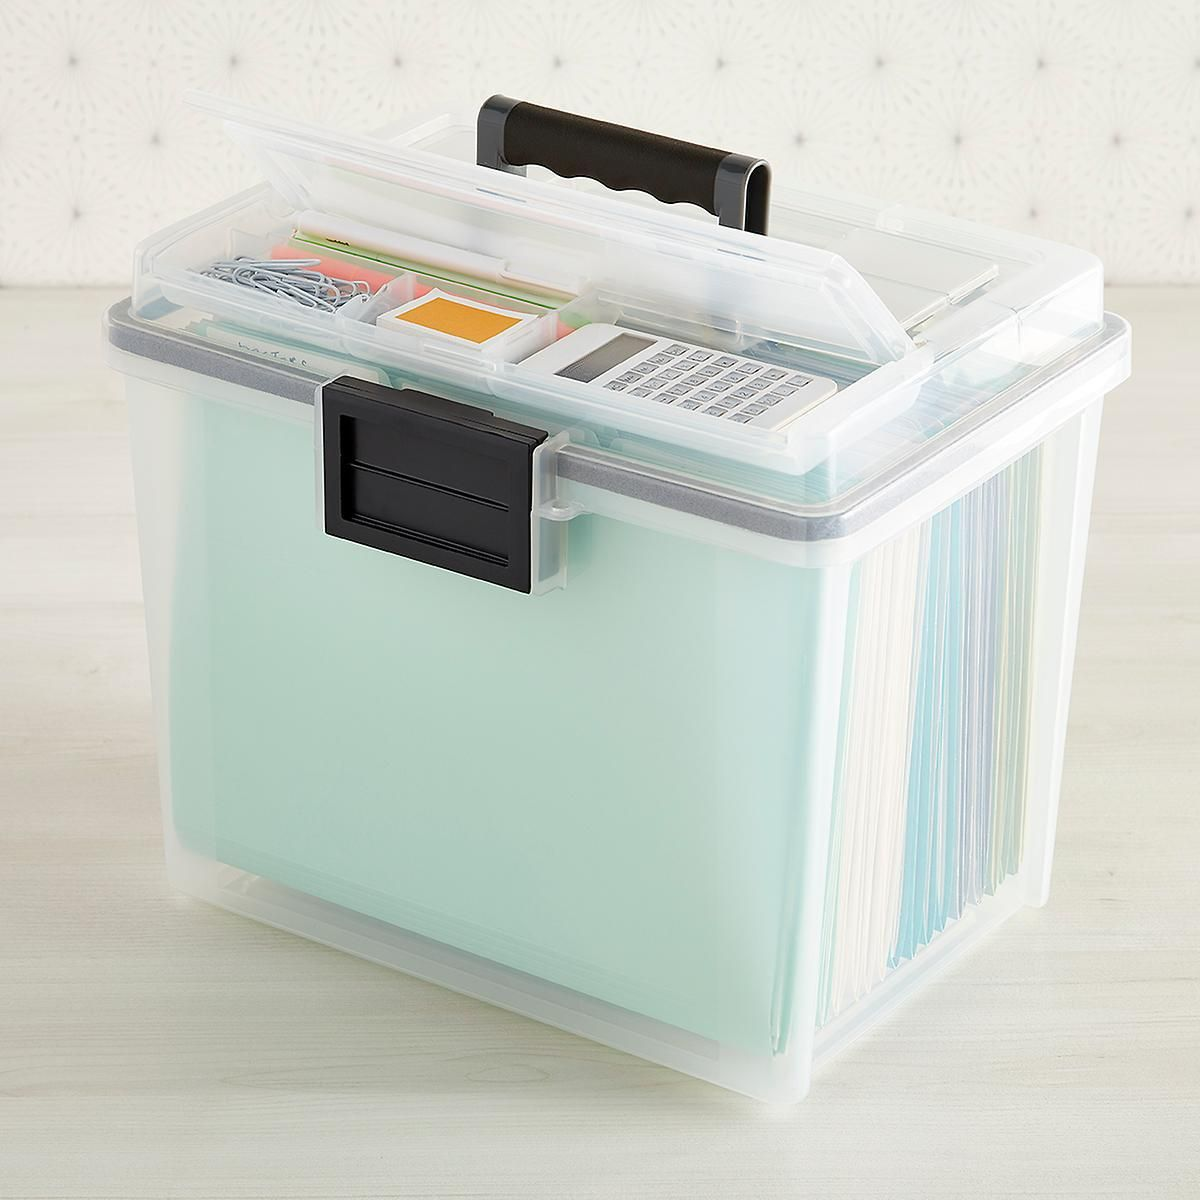 For business or personal files, our Weathertight Portable